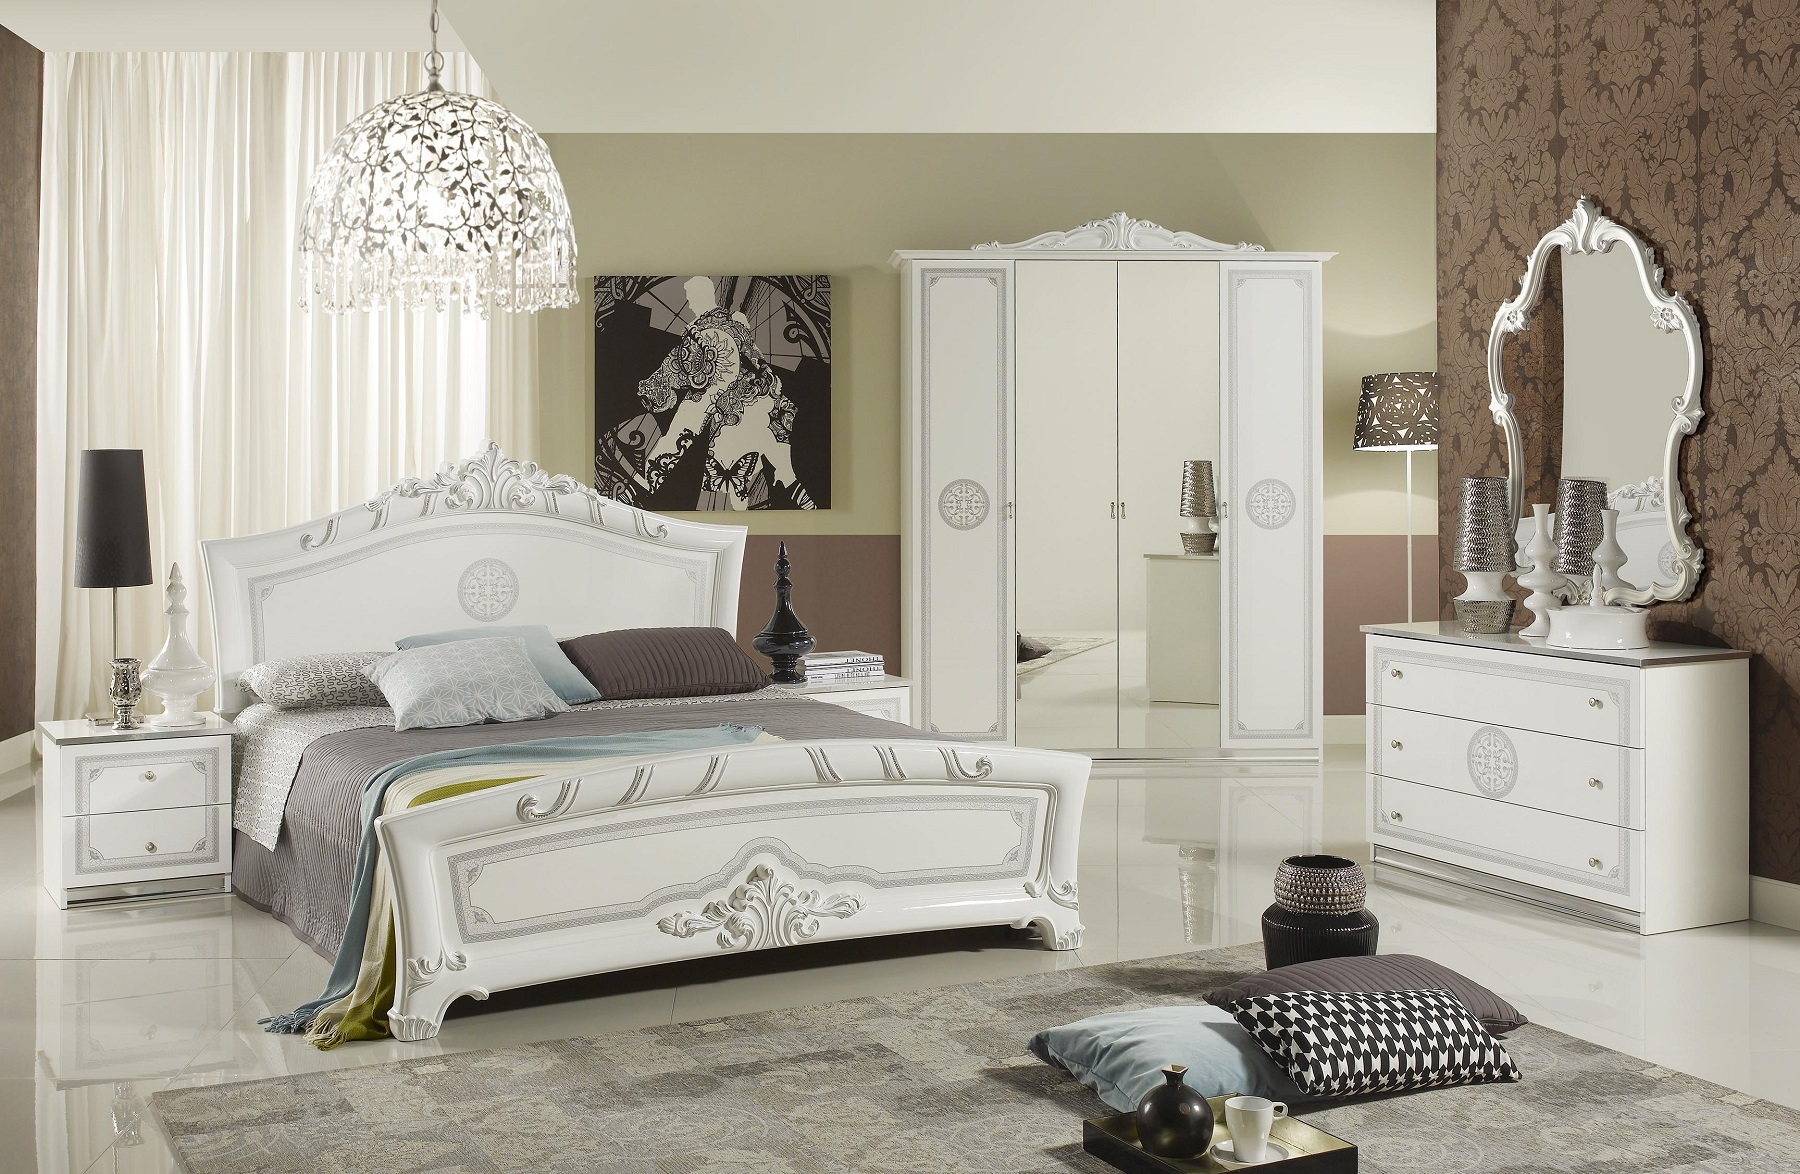 schlafzimmer great weiss silber klassische design italienisch 18 xp pfgrcca4c bsp. Black Bedroom Furniture Sets. Home Design Ideas